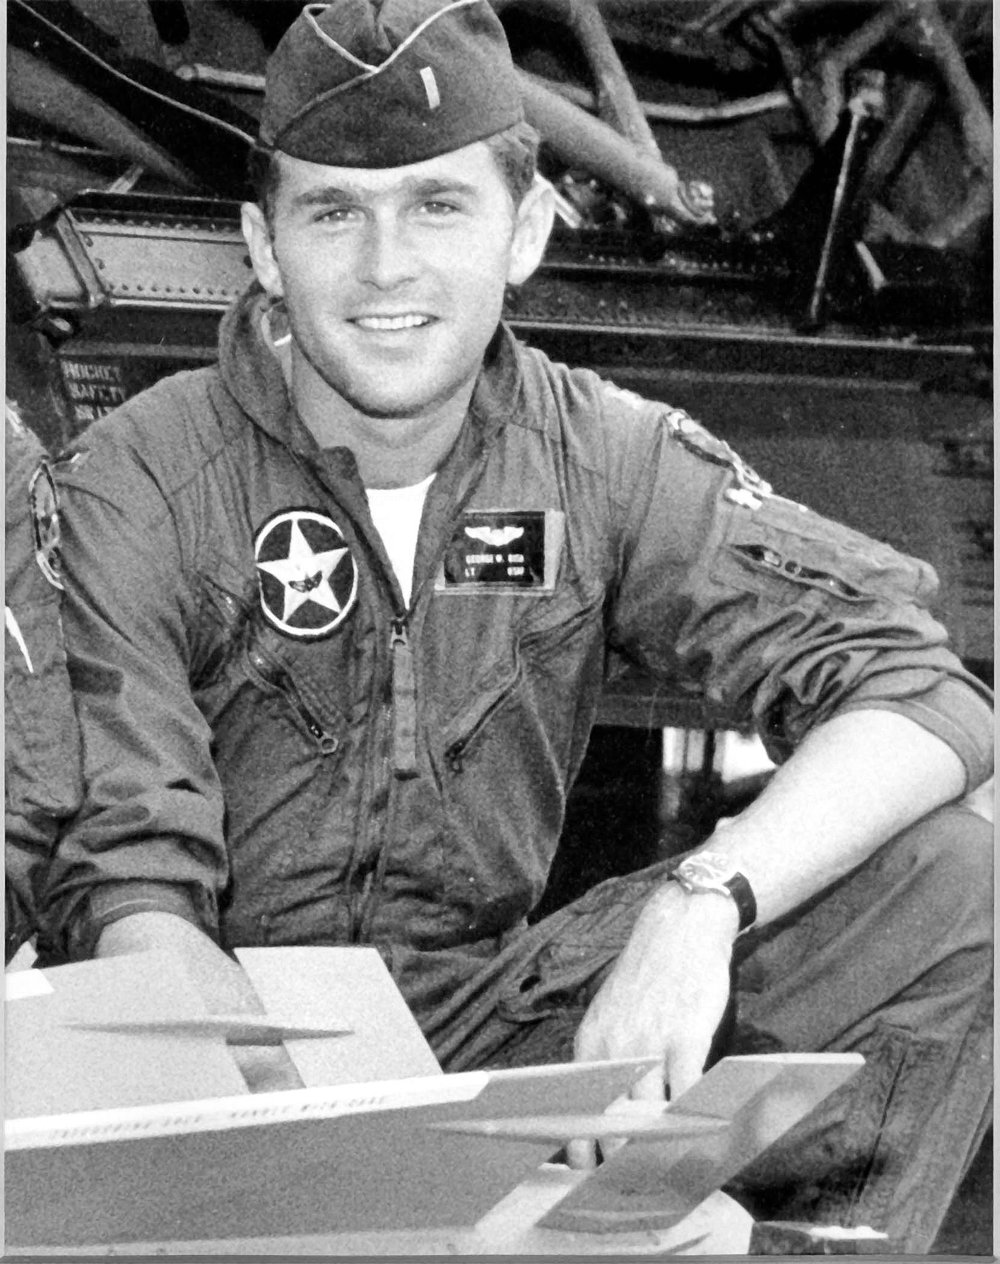 Lt. George W. Bush, Texas Air National Guard